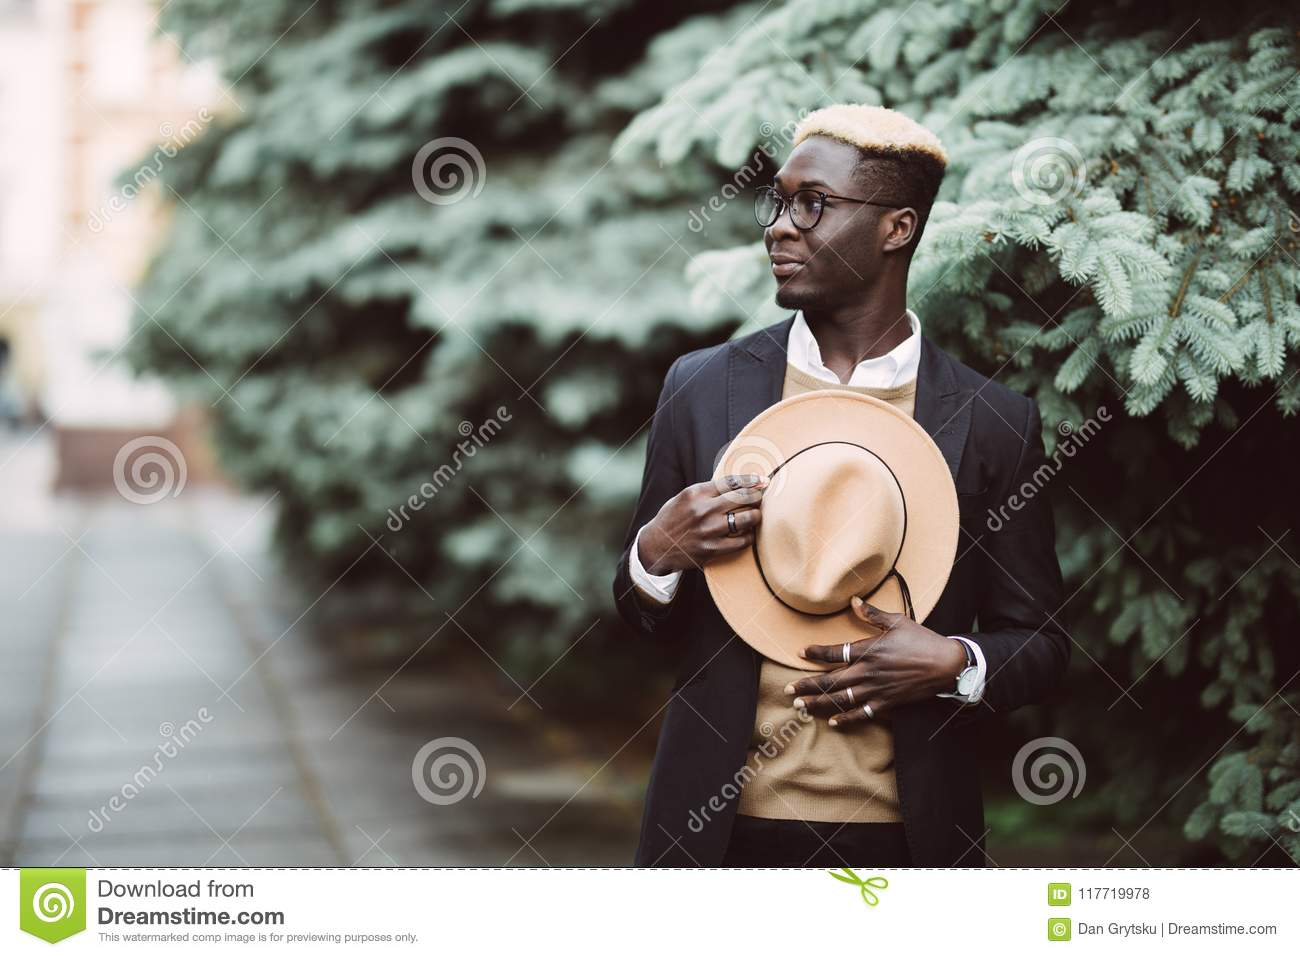 Handsome Afro American man in casual wear and sun glasses walking outdoors  in the street 745d2d3c96d3